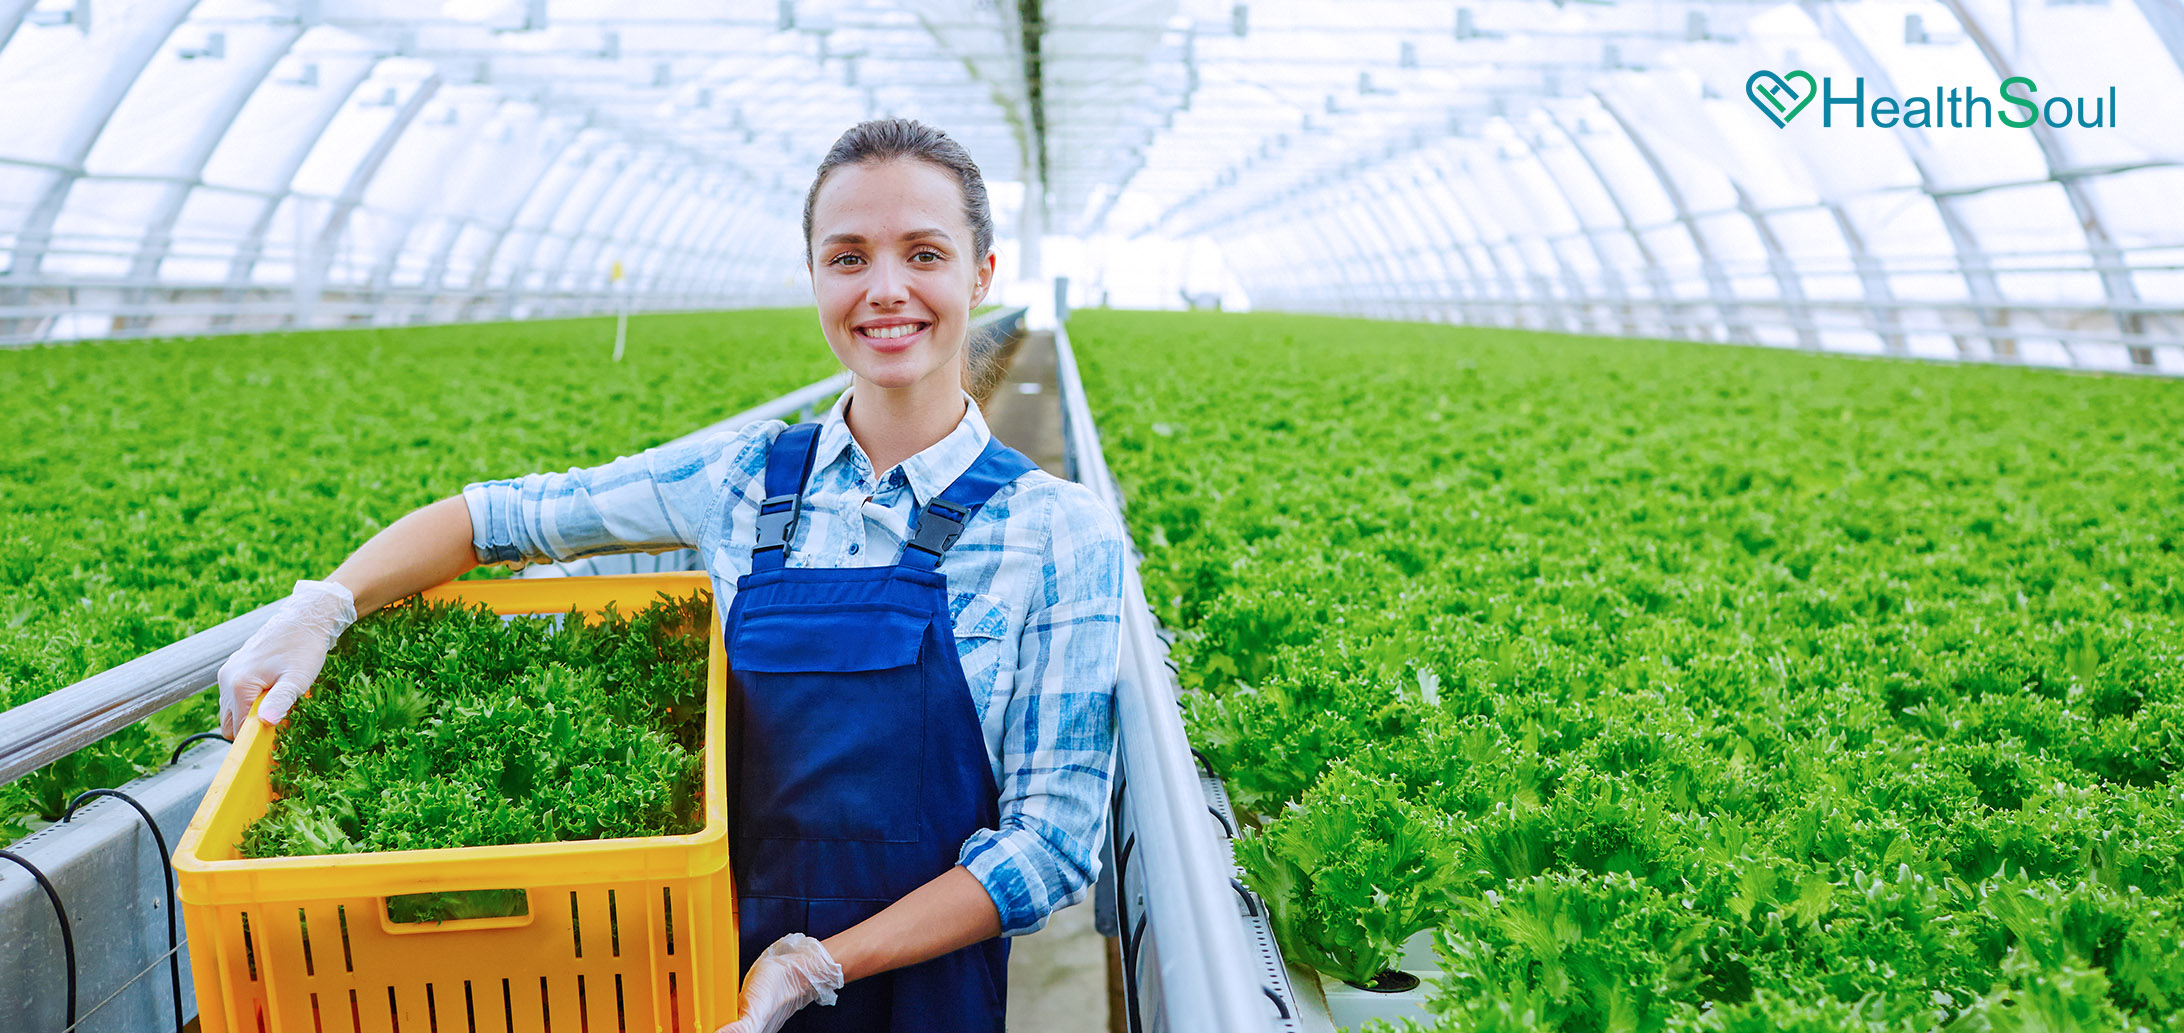 The Challenge of Feeding The World How Agricultural Technology is Helping | HealthSoul